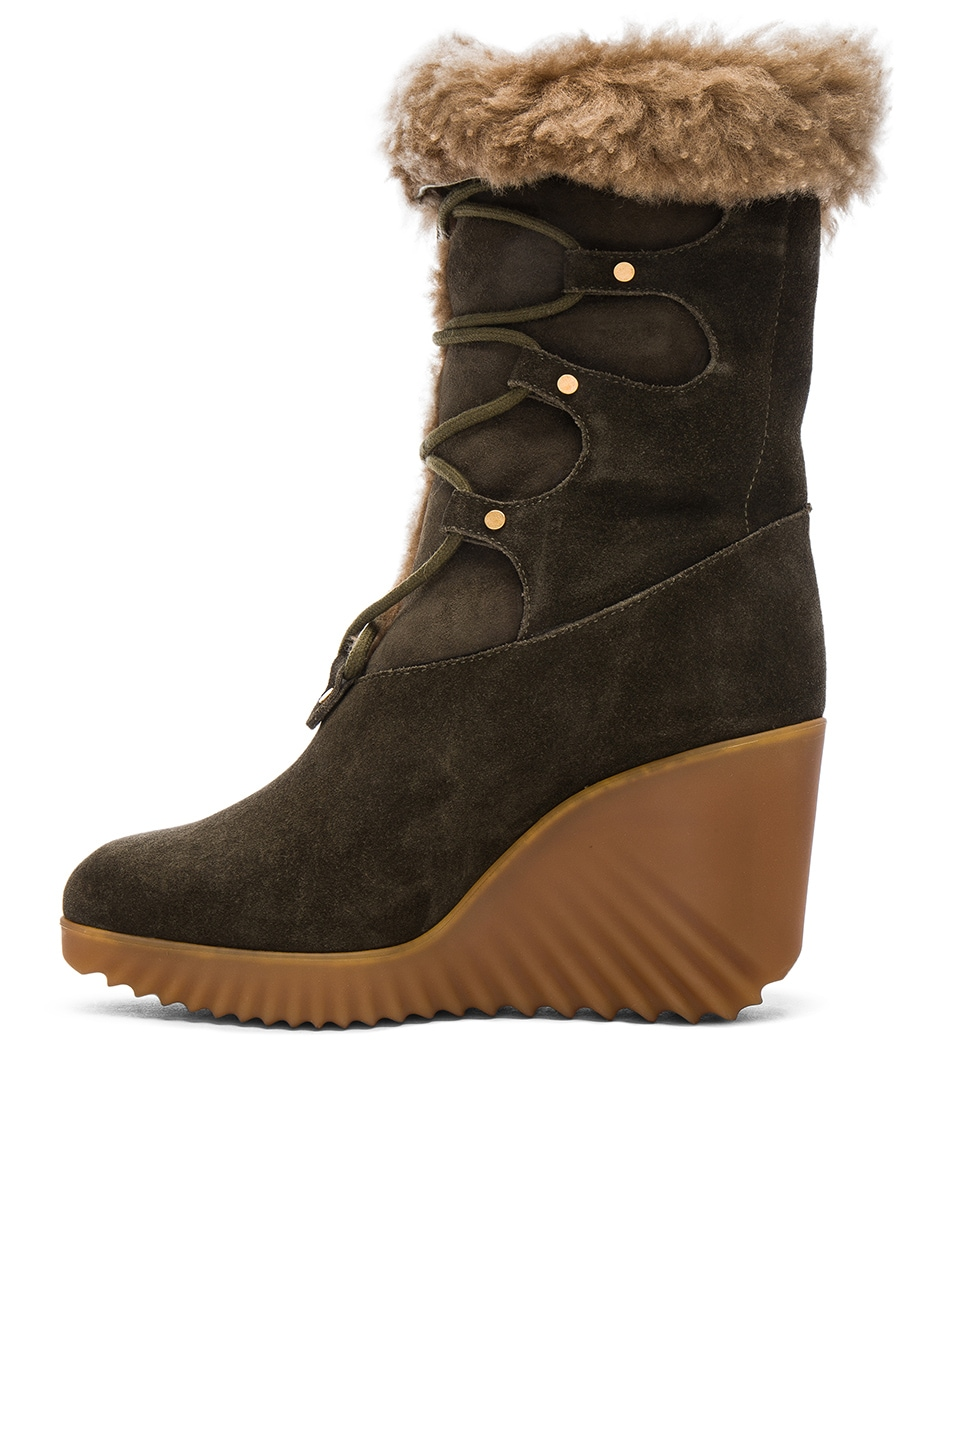 Image 5 of Chloe Suede Foster Wedge Boots in Dark Khaki